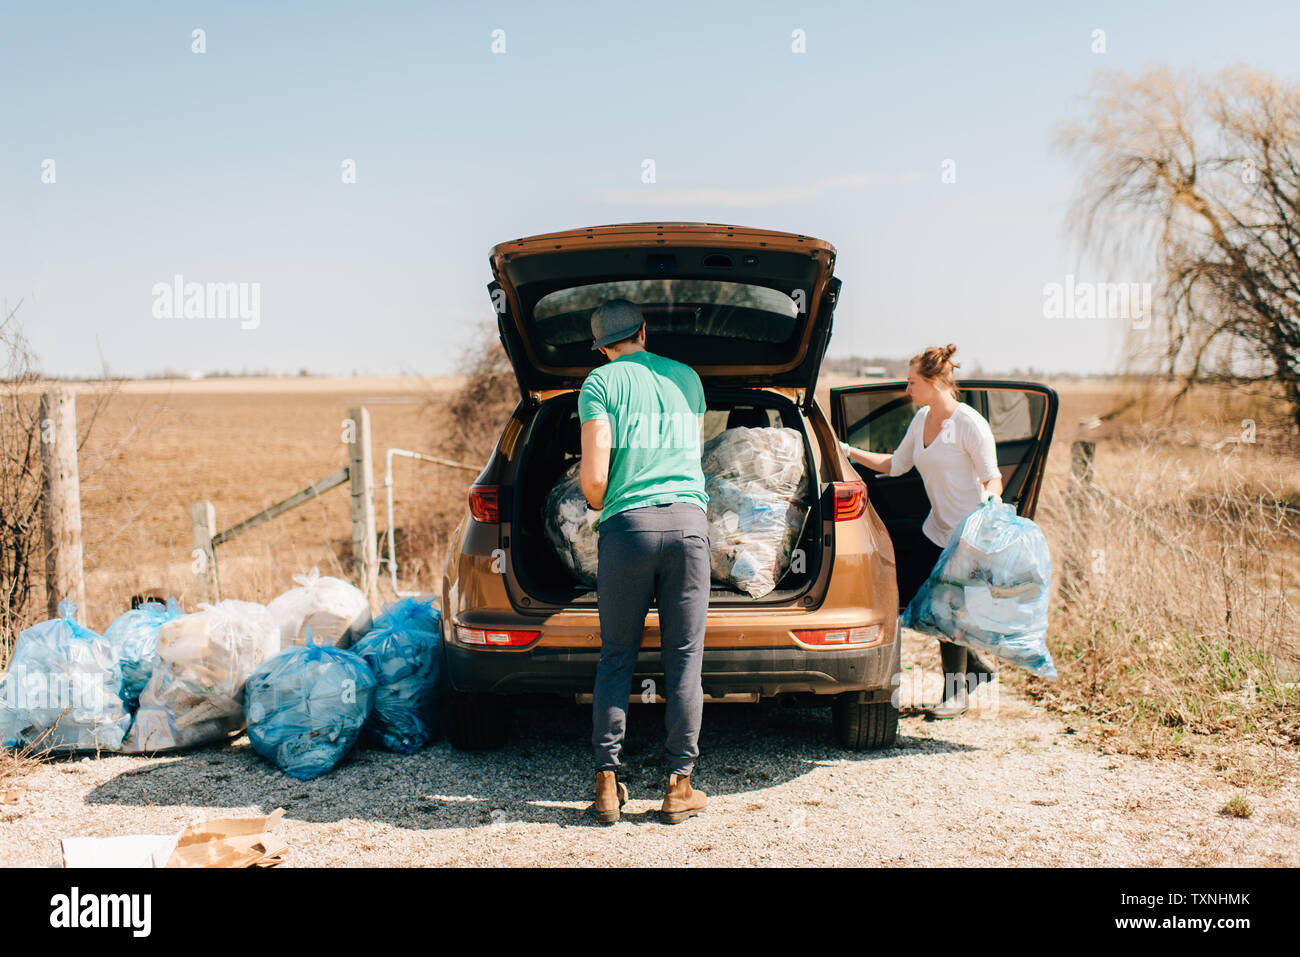 Couple putting rubbish bags into boot, Georgetown, Canada - Stock Image